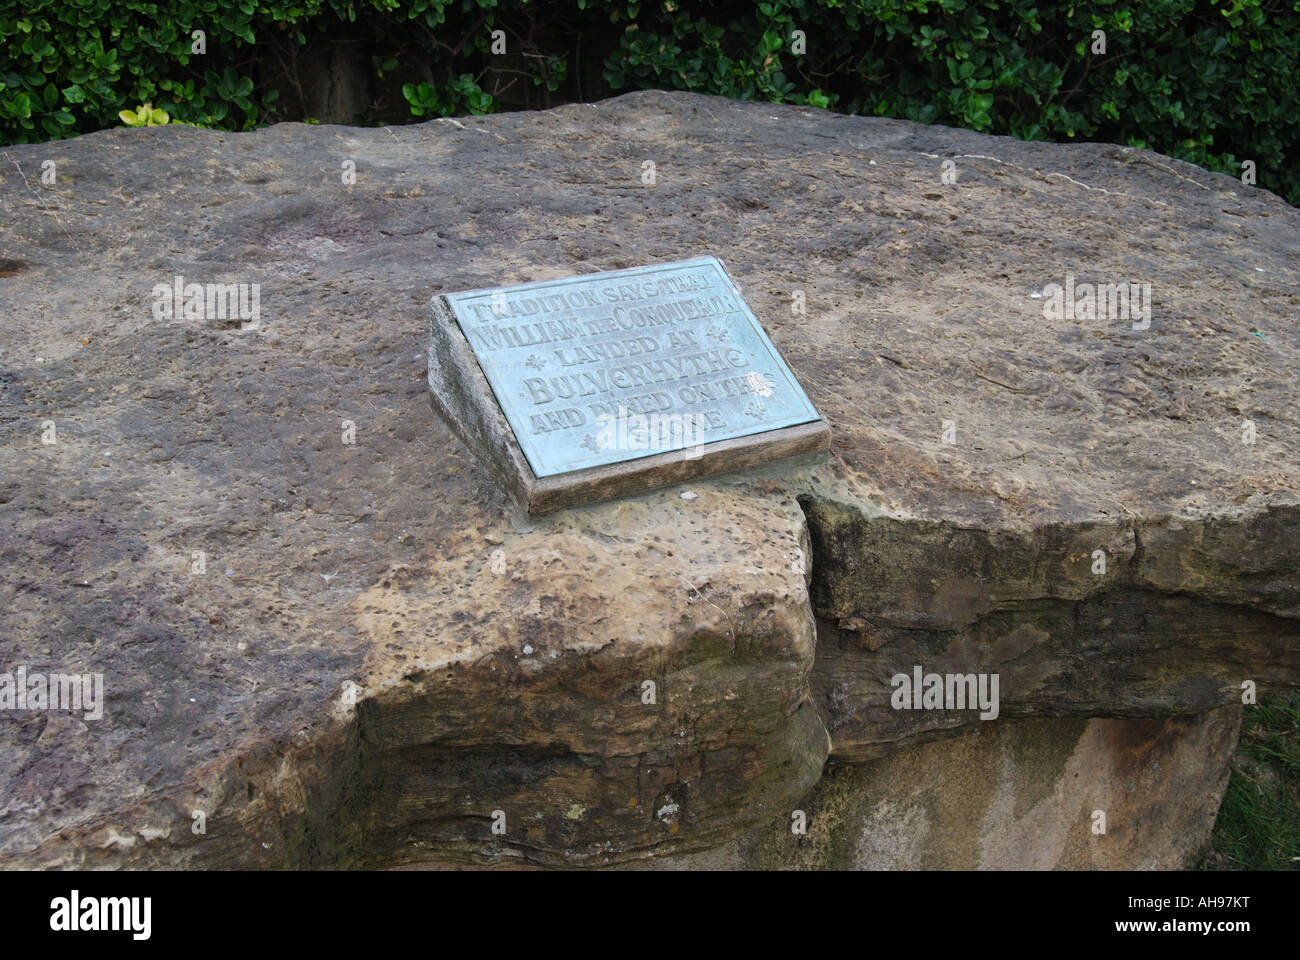 Stone table on which William the Conqueror dined, Bulverhythe, Hastings, East Sussex, England, United Kingdom - Stock Image